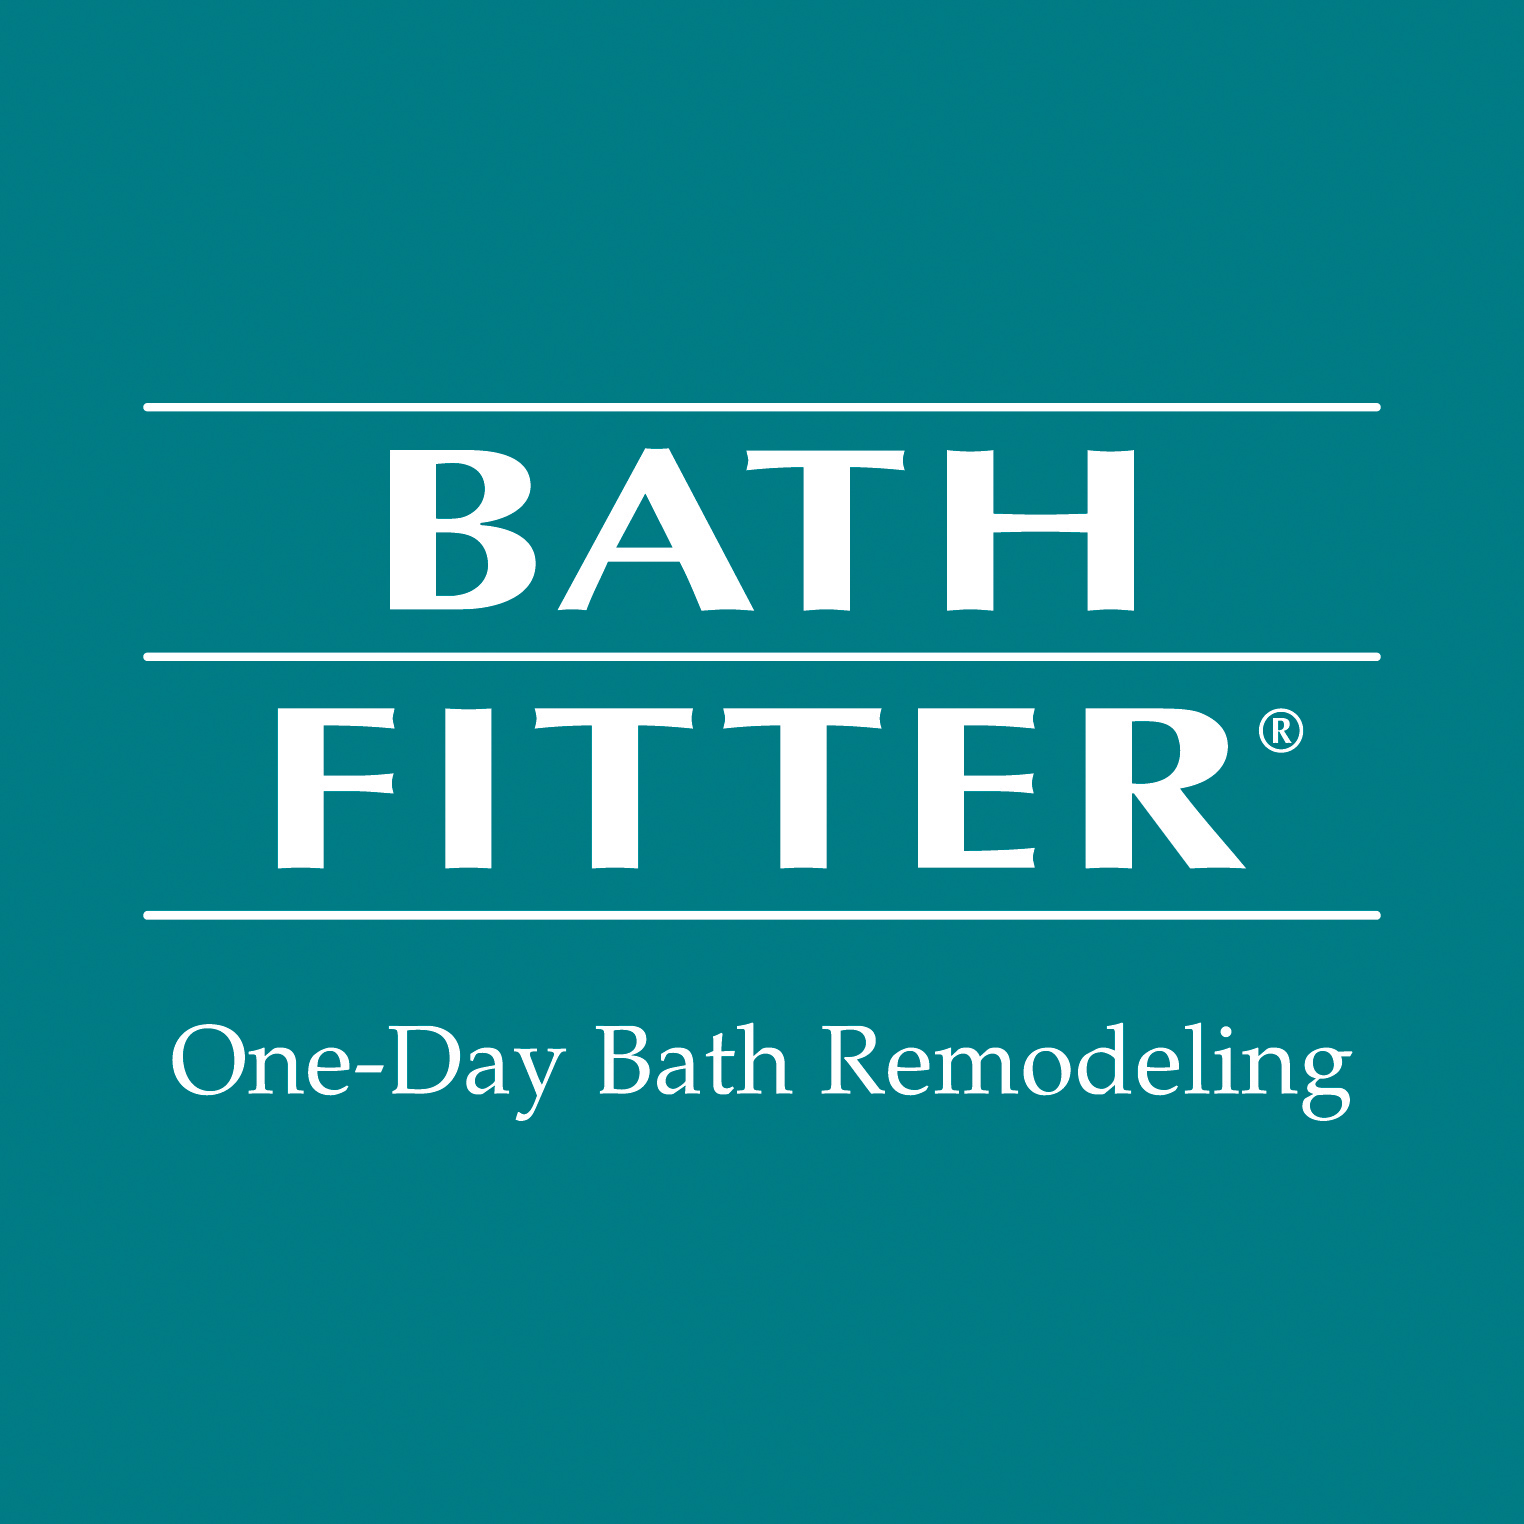 Pam 101: Call Bath Fitter...and then your Dad